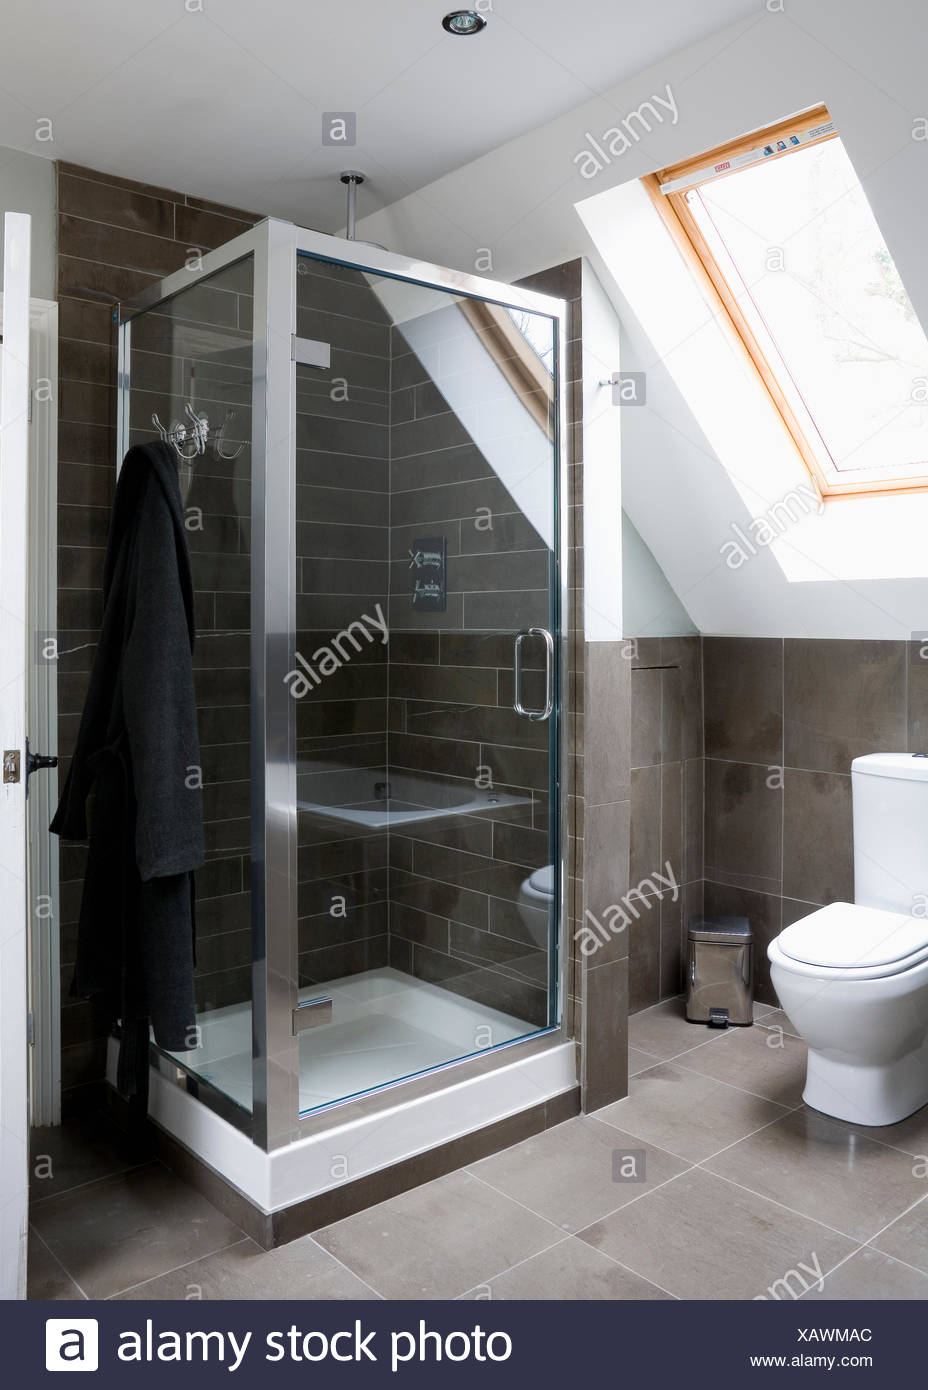 Limestone floor and wall tiles in modern loft conversion shower room ...